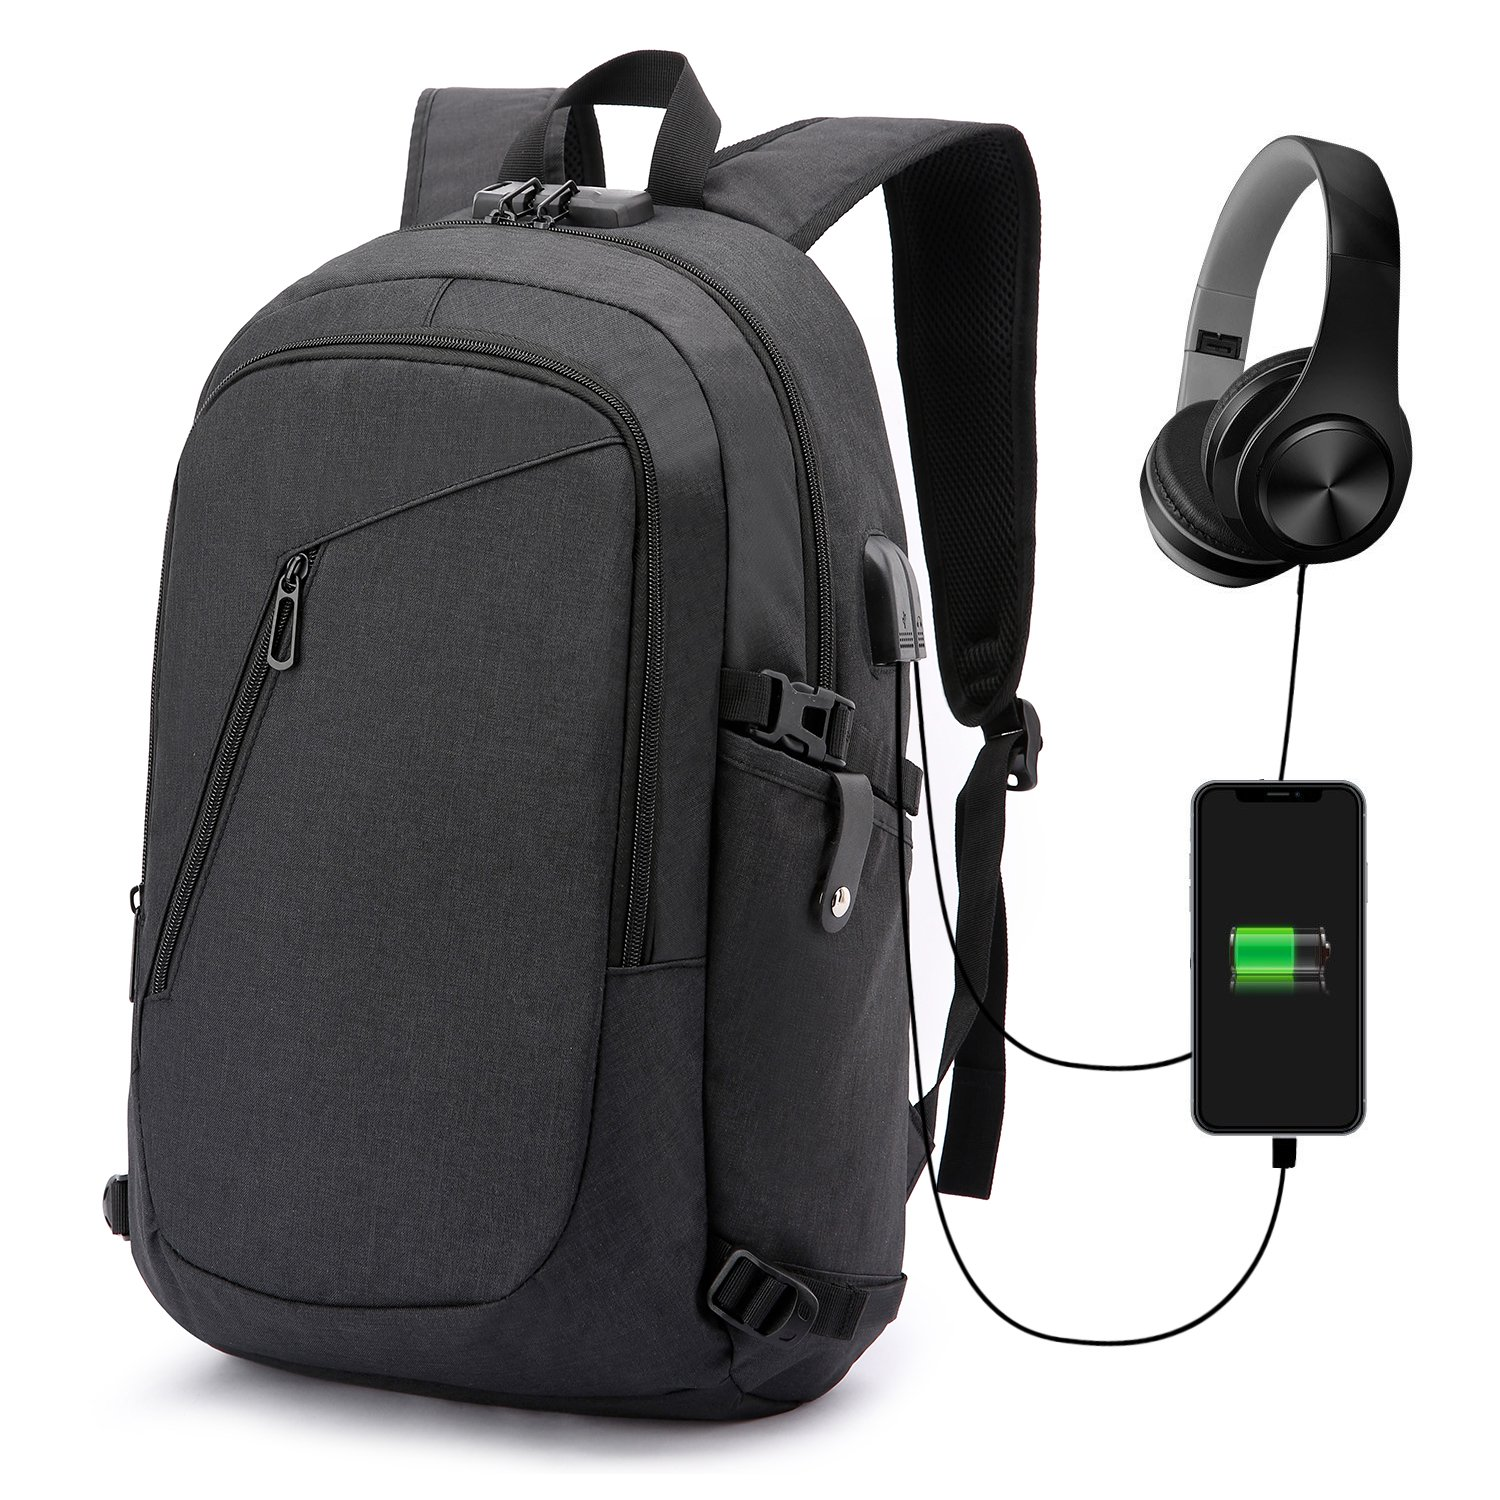 Anti-Theft Backpack,Business Laptop Backpack with USB Charging Port and Earphone Port with Lock Slim Water Resistant Bag Daypack Fits 15.6 Inch Computer Notebook Rucksack for Work, College WENIG